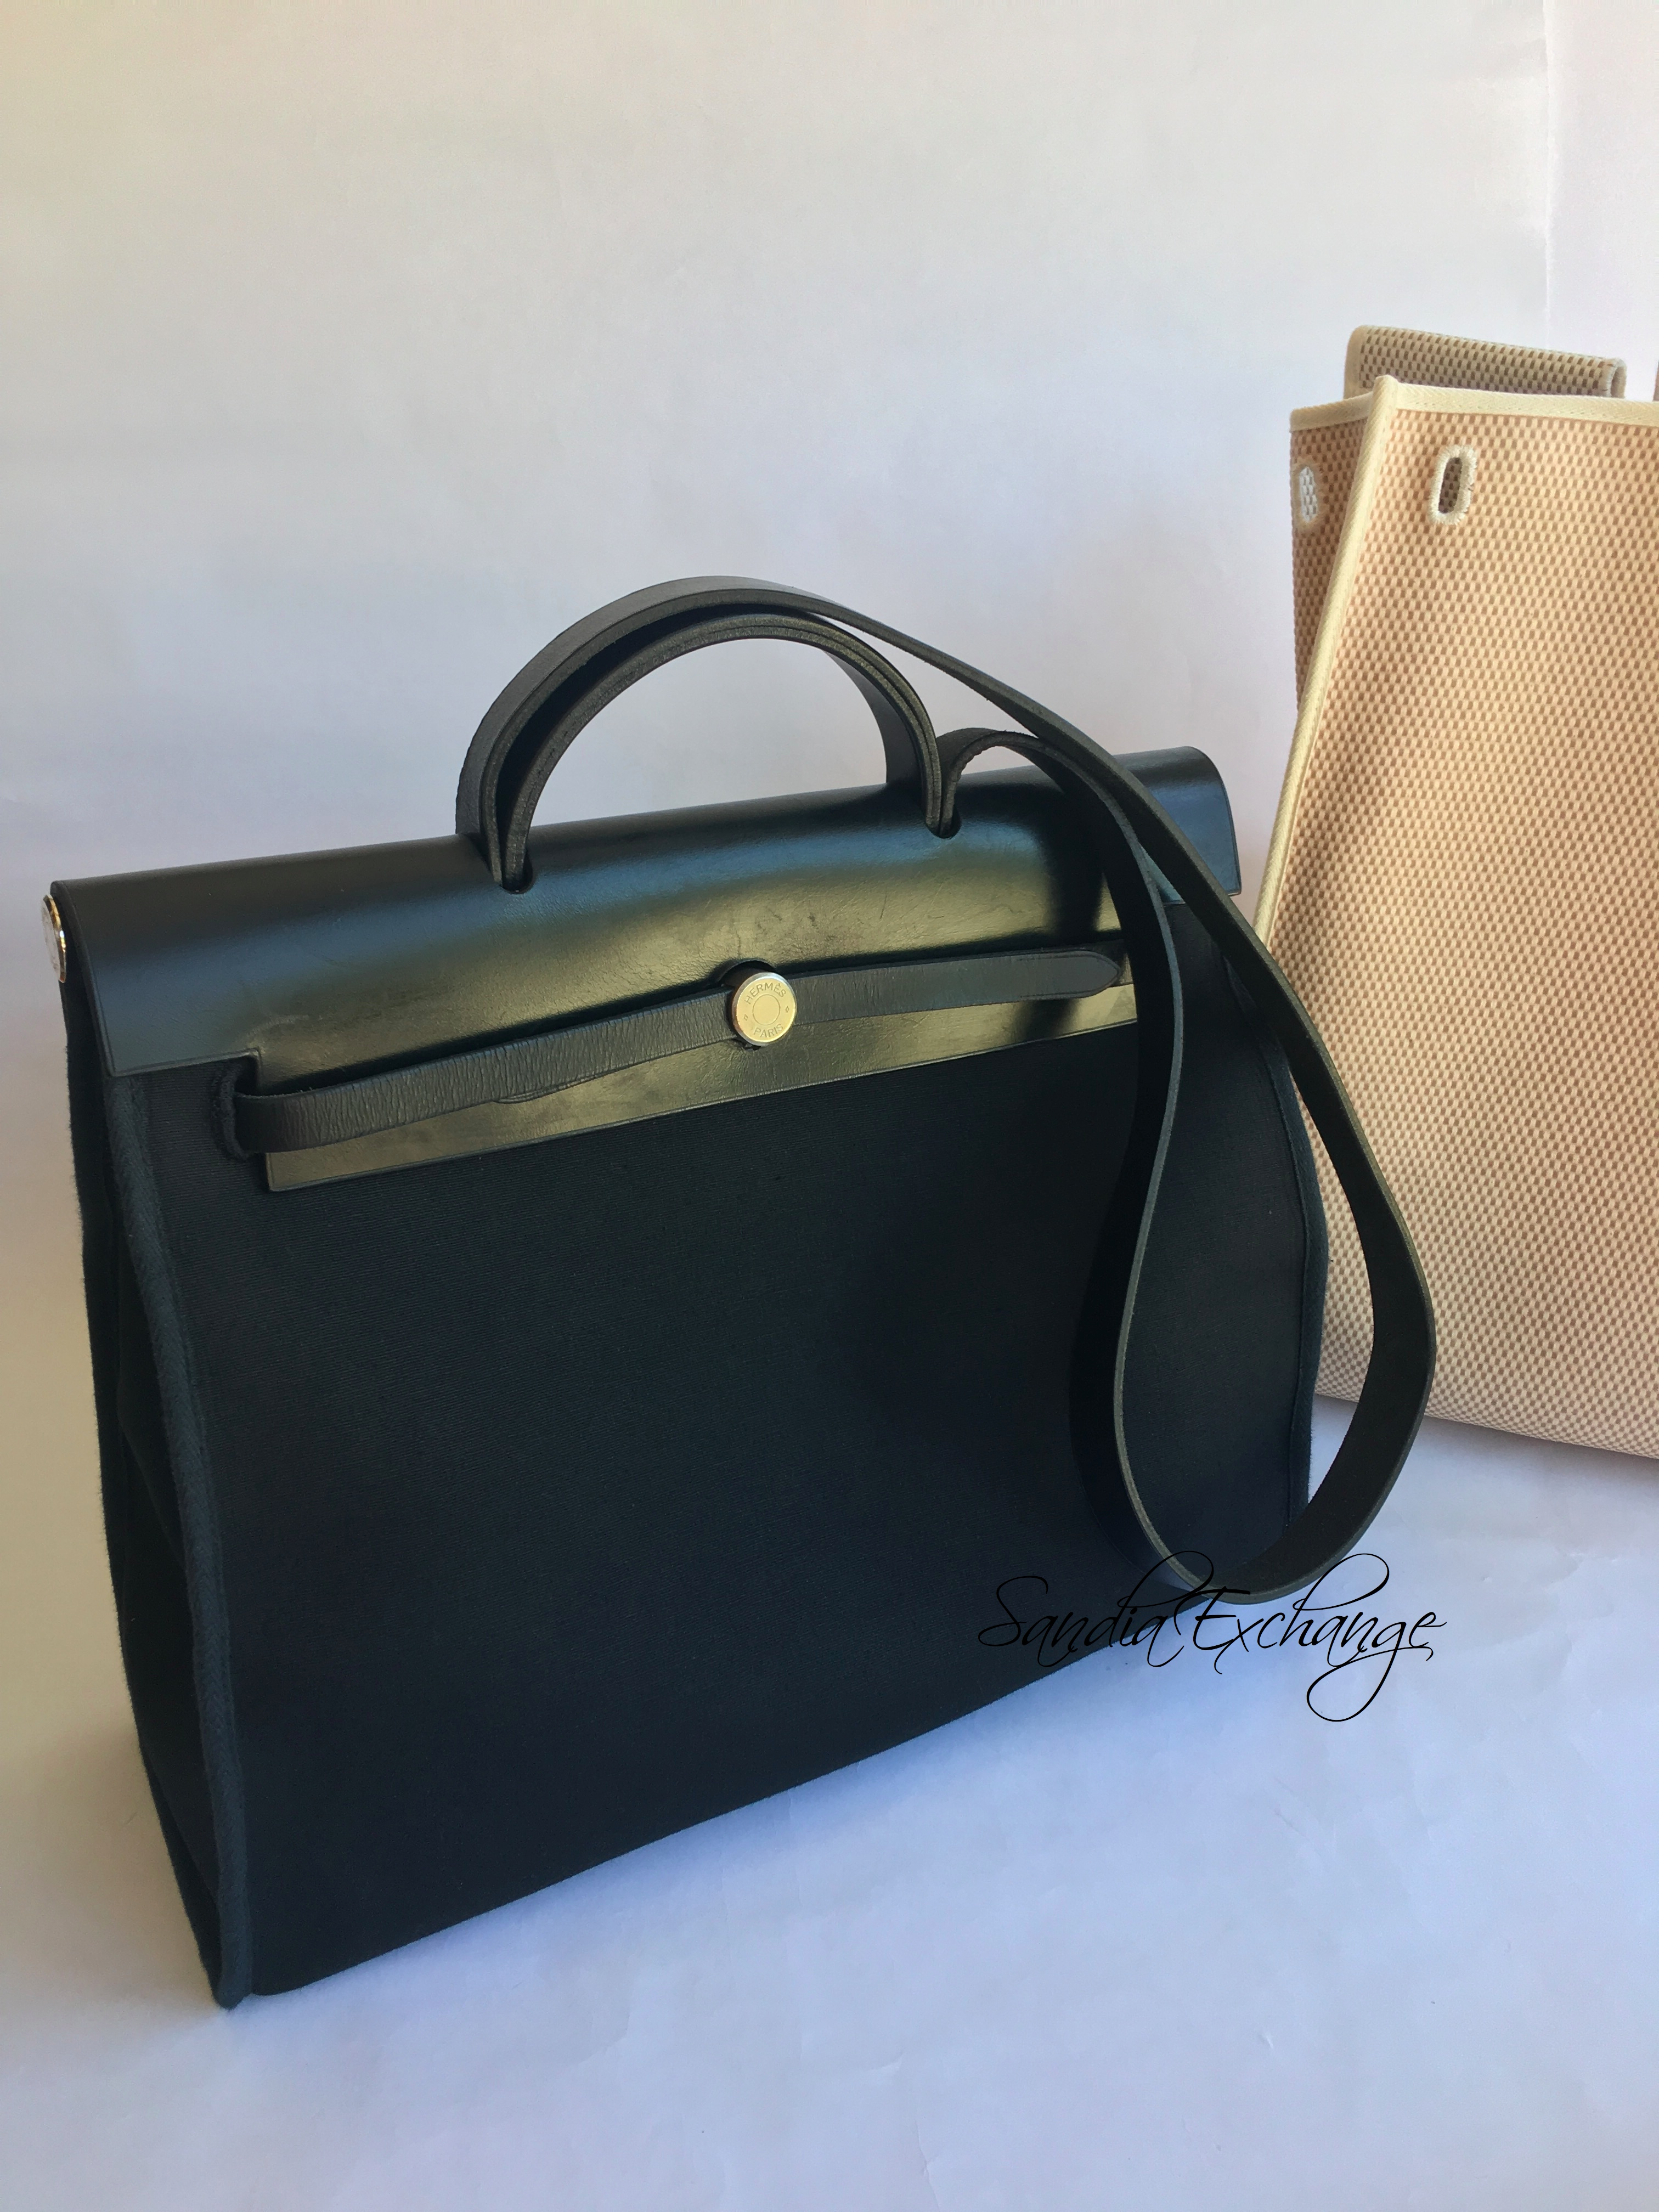 83b618d9f0b italy hermes kelly bags 8aca8 5742d  official authentic hermes herbag mm  size black leather mens bag with replacement bag sandia exchange 2ee99